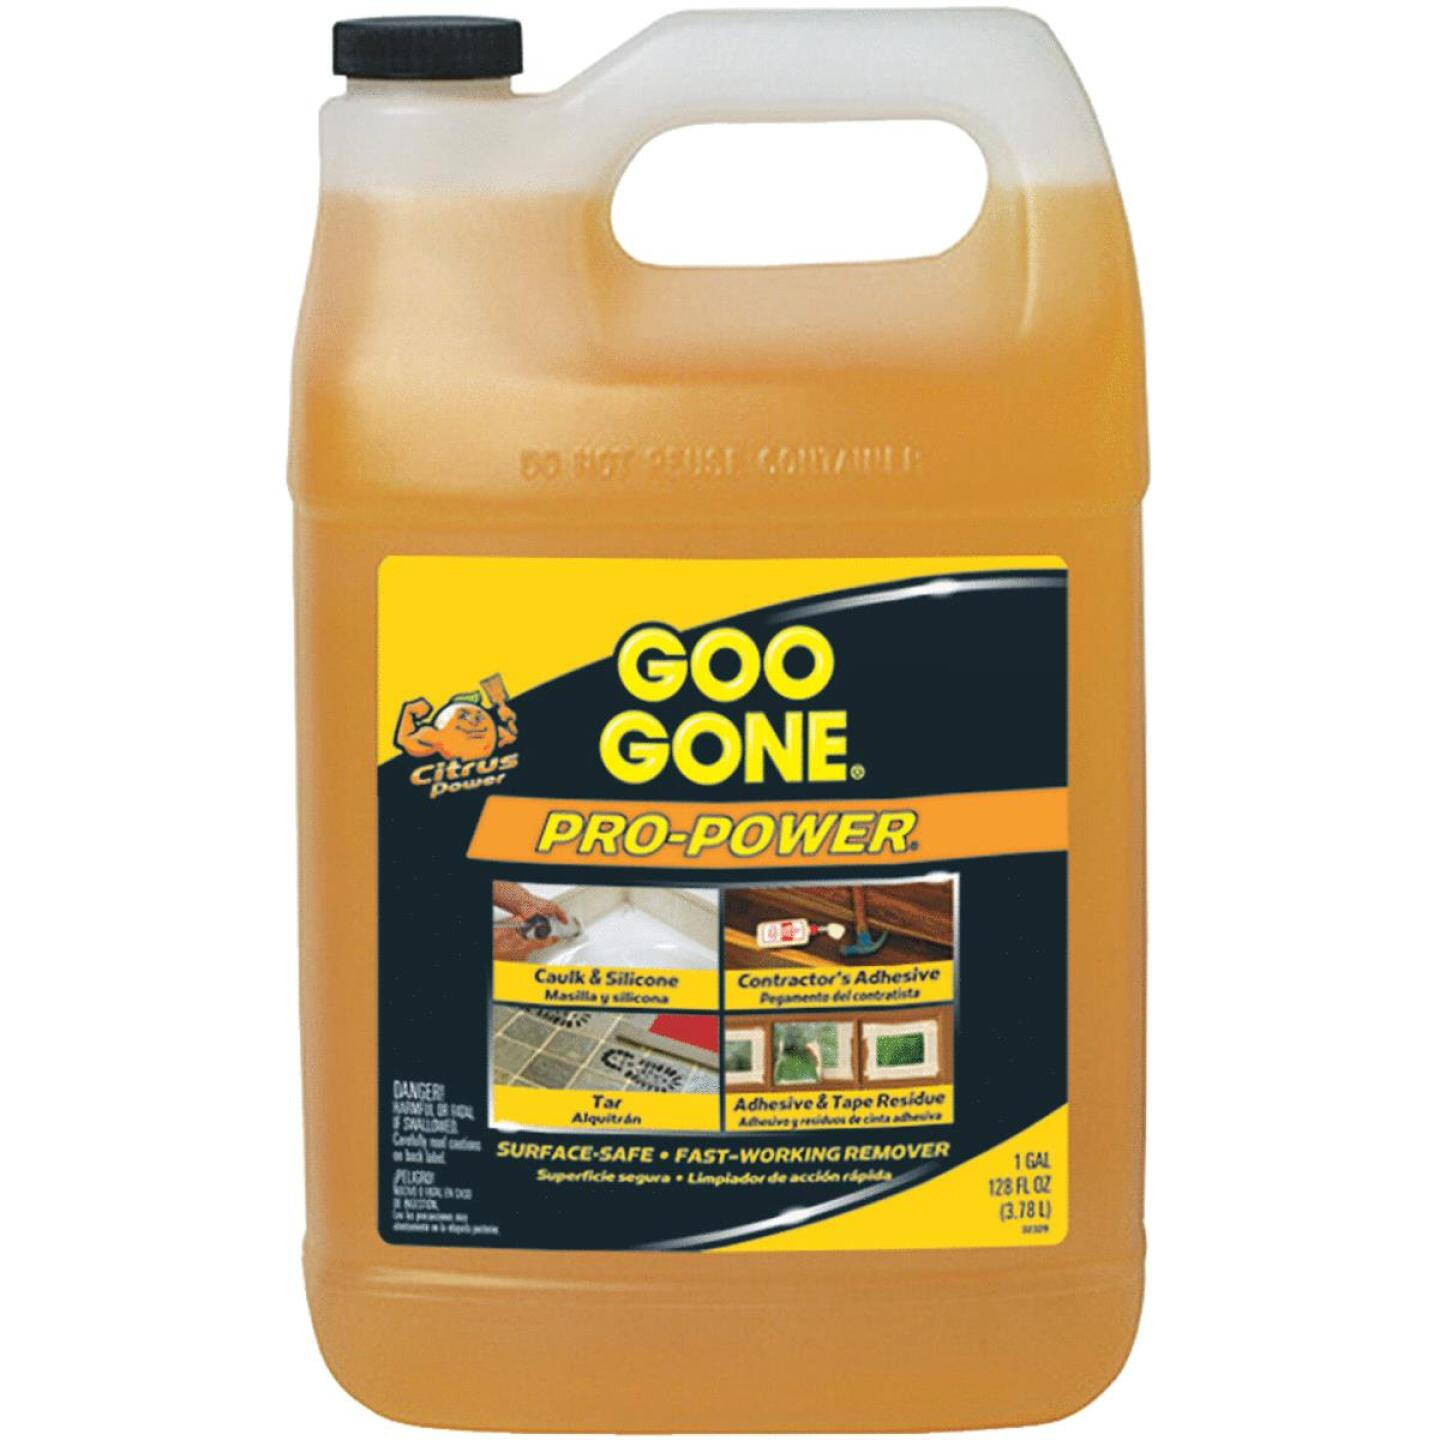 Goo Gone 1 Gal. Pro-Power Adhesive Remover Image 334